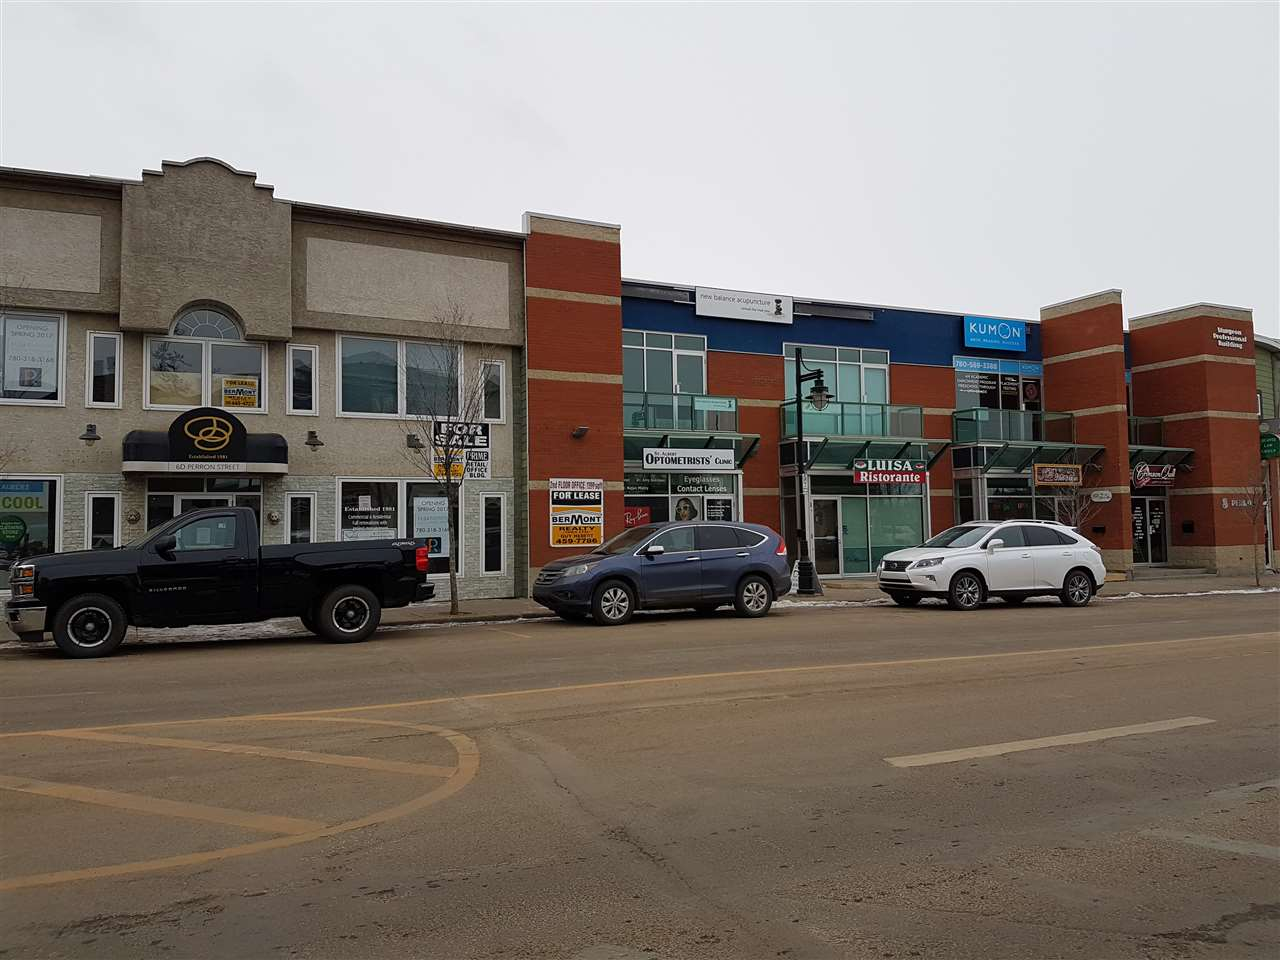 DOWNTOWN STUDIO/OFFICE SPACE IDEAL FOR PROFESSIONAL, LAWYER, THERAPIST, ARCHITECT, DRAFTS PERSON, DESIGNER, PROFESSIONAL DECORATOR, PSYCHOLOGIST, ETC. 1180 SQ. FT IS FULLY DEVELOPED WITH OPEN SPACE PLUS 2 PRIVATE OFFICES.  BALCONY WITH VIEW OF CITY HALL IDEAL FOR CLIENT APPRECIATION PARTIES!  WATCH THE FIREWORKS!  ENJOY THE TRES CHIC LIFESTYLE OF WORKING IN DOWNTOWN ST. ALBERT. AIR CONDITIONED. JUST STEPS AWAY FROM FARMERS' MARKET. RIGHT IN THE HEART OF CANADA'S MOST DESIRABLE CITIES - HISTORIC, LOVELY, SUCCESSFUL ST. ALBERT.